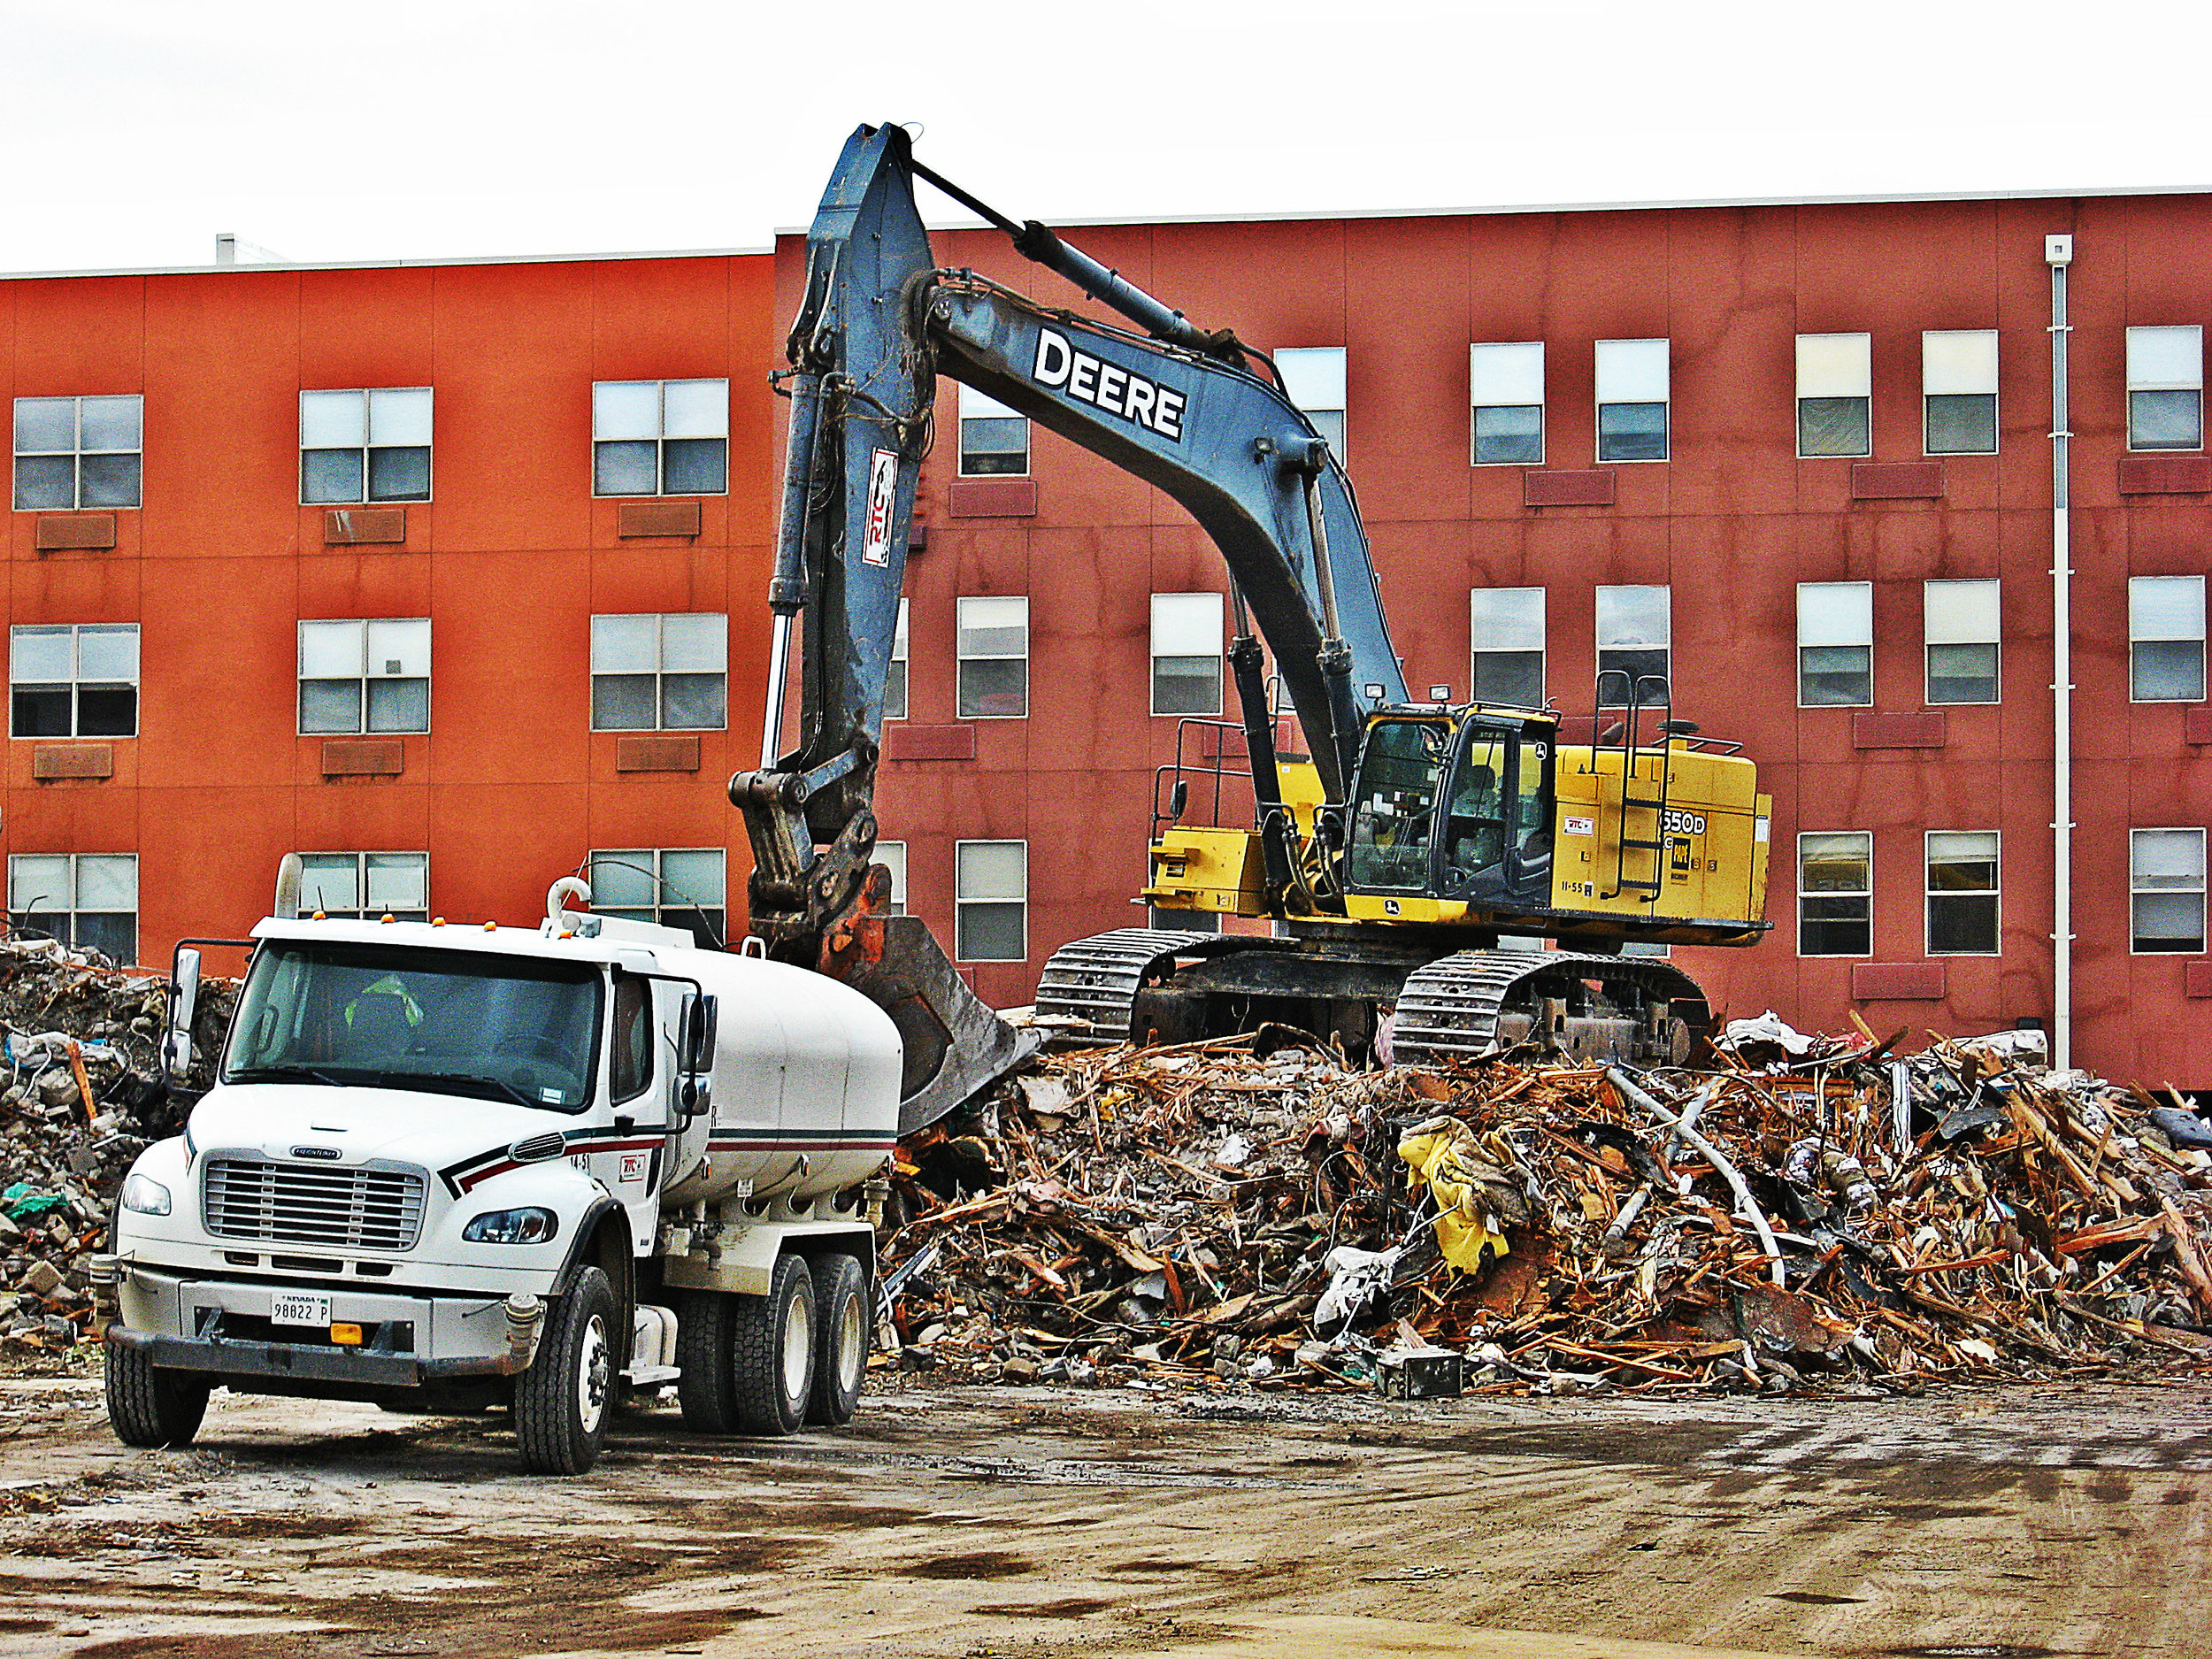 The Carriage Inn, recently a motel for long-term residents, has been bought off and razed as part of Jacobs Entertainment Inc. plans for new downtown development.